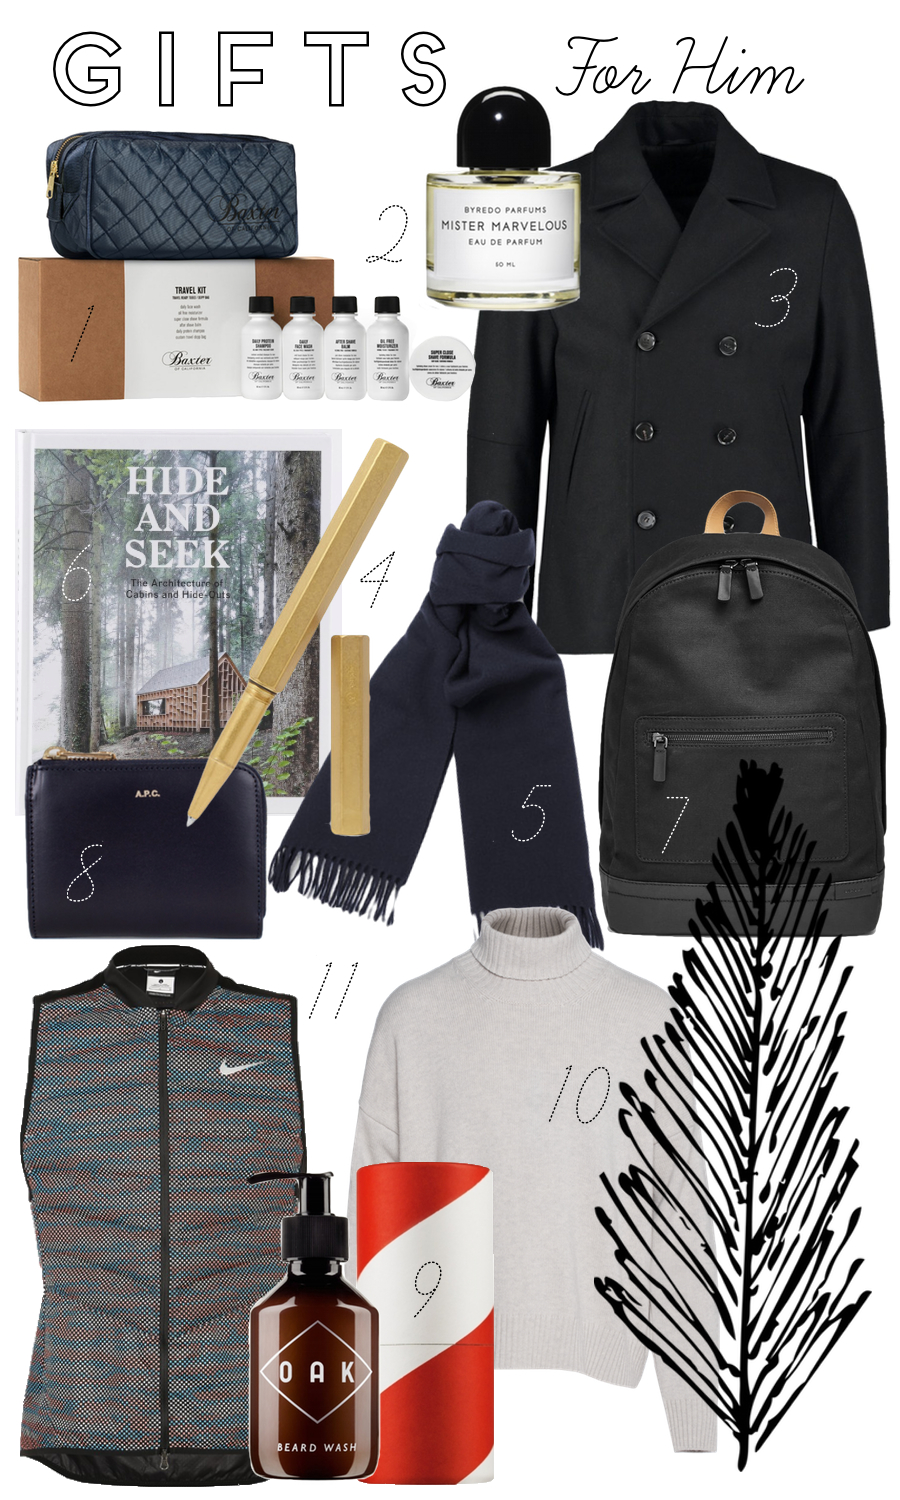 giftguide_xmas_2015_forhim